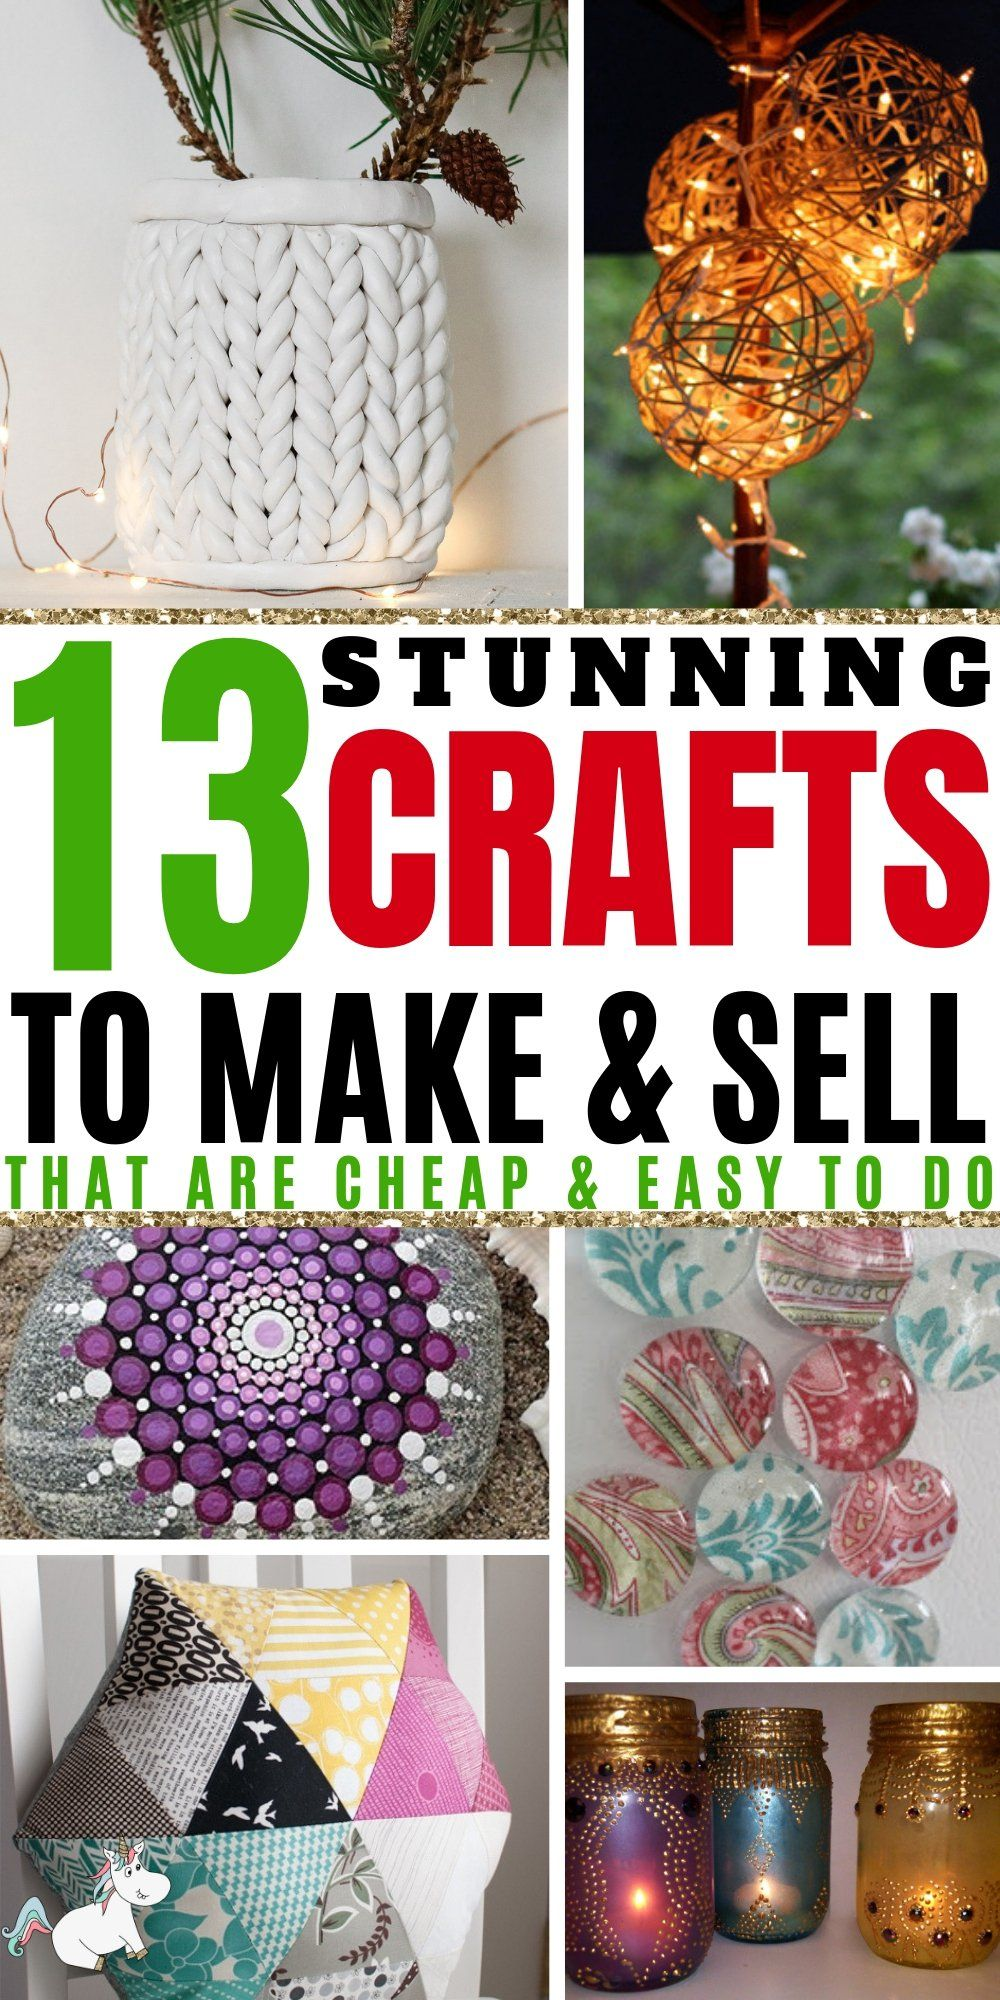 13 Easy Crafts To Make And Sell For Extra Money in 2019 #craftstosell